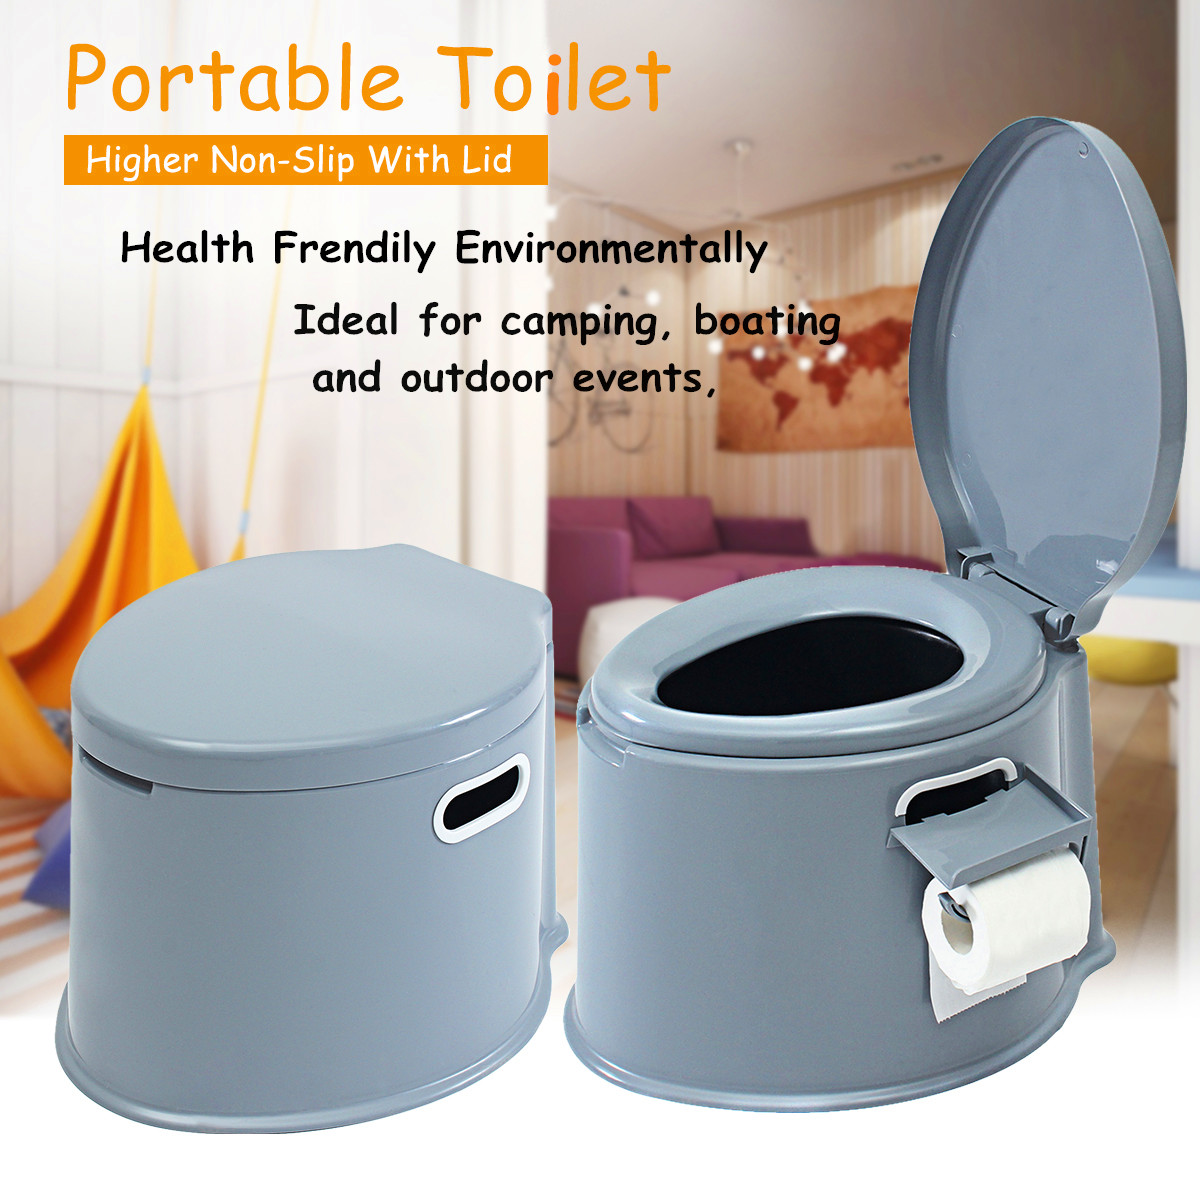 Portable Toilet Compact Potty Seat Travel Camping Caravan toilet Picnic Indoor Outdoor Event Fishing Boating